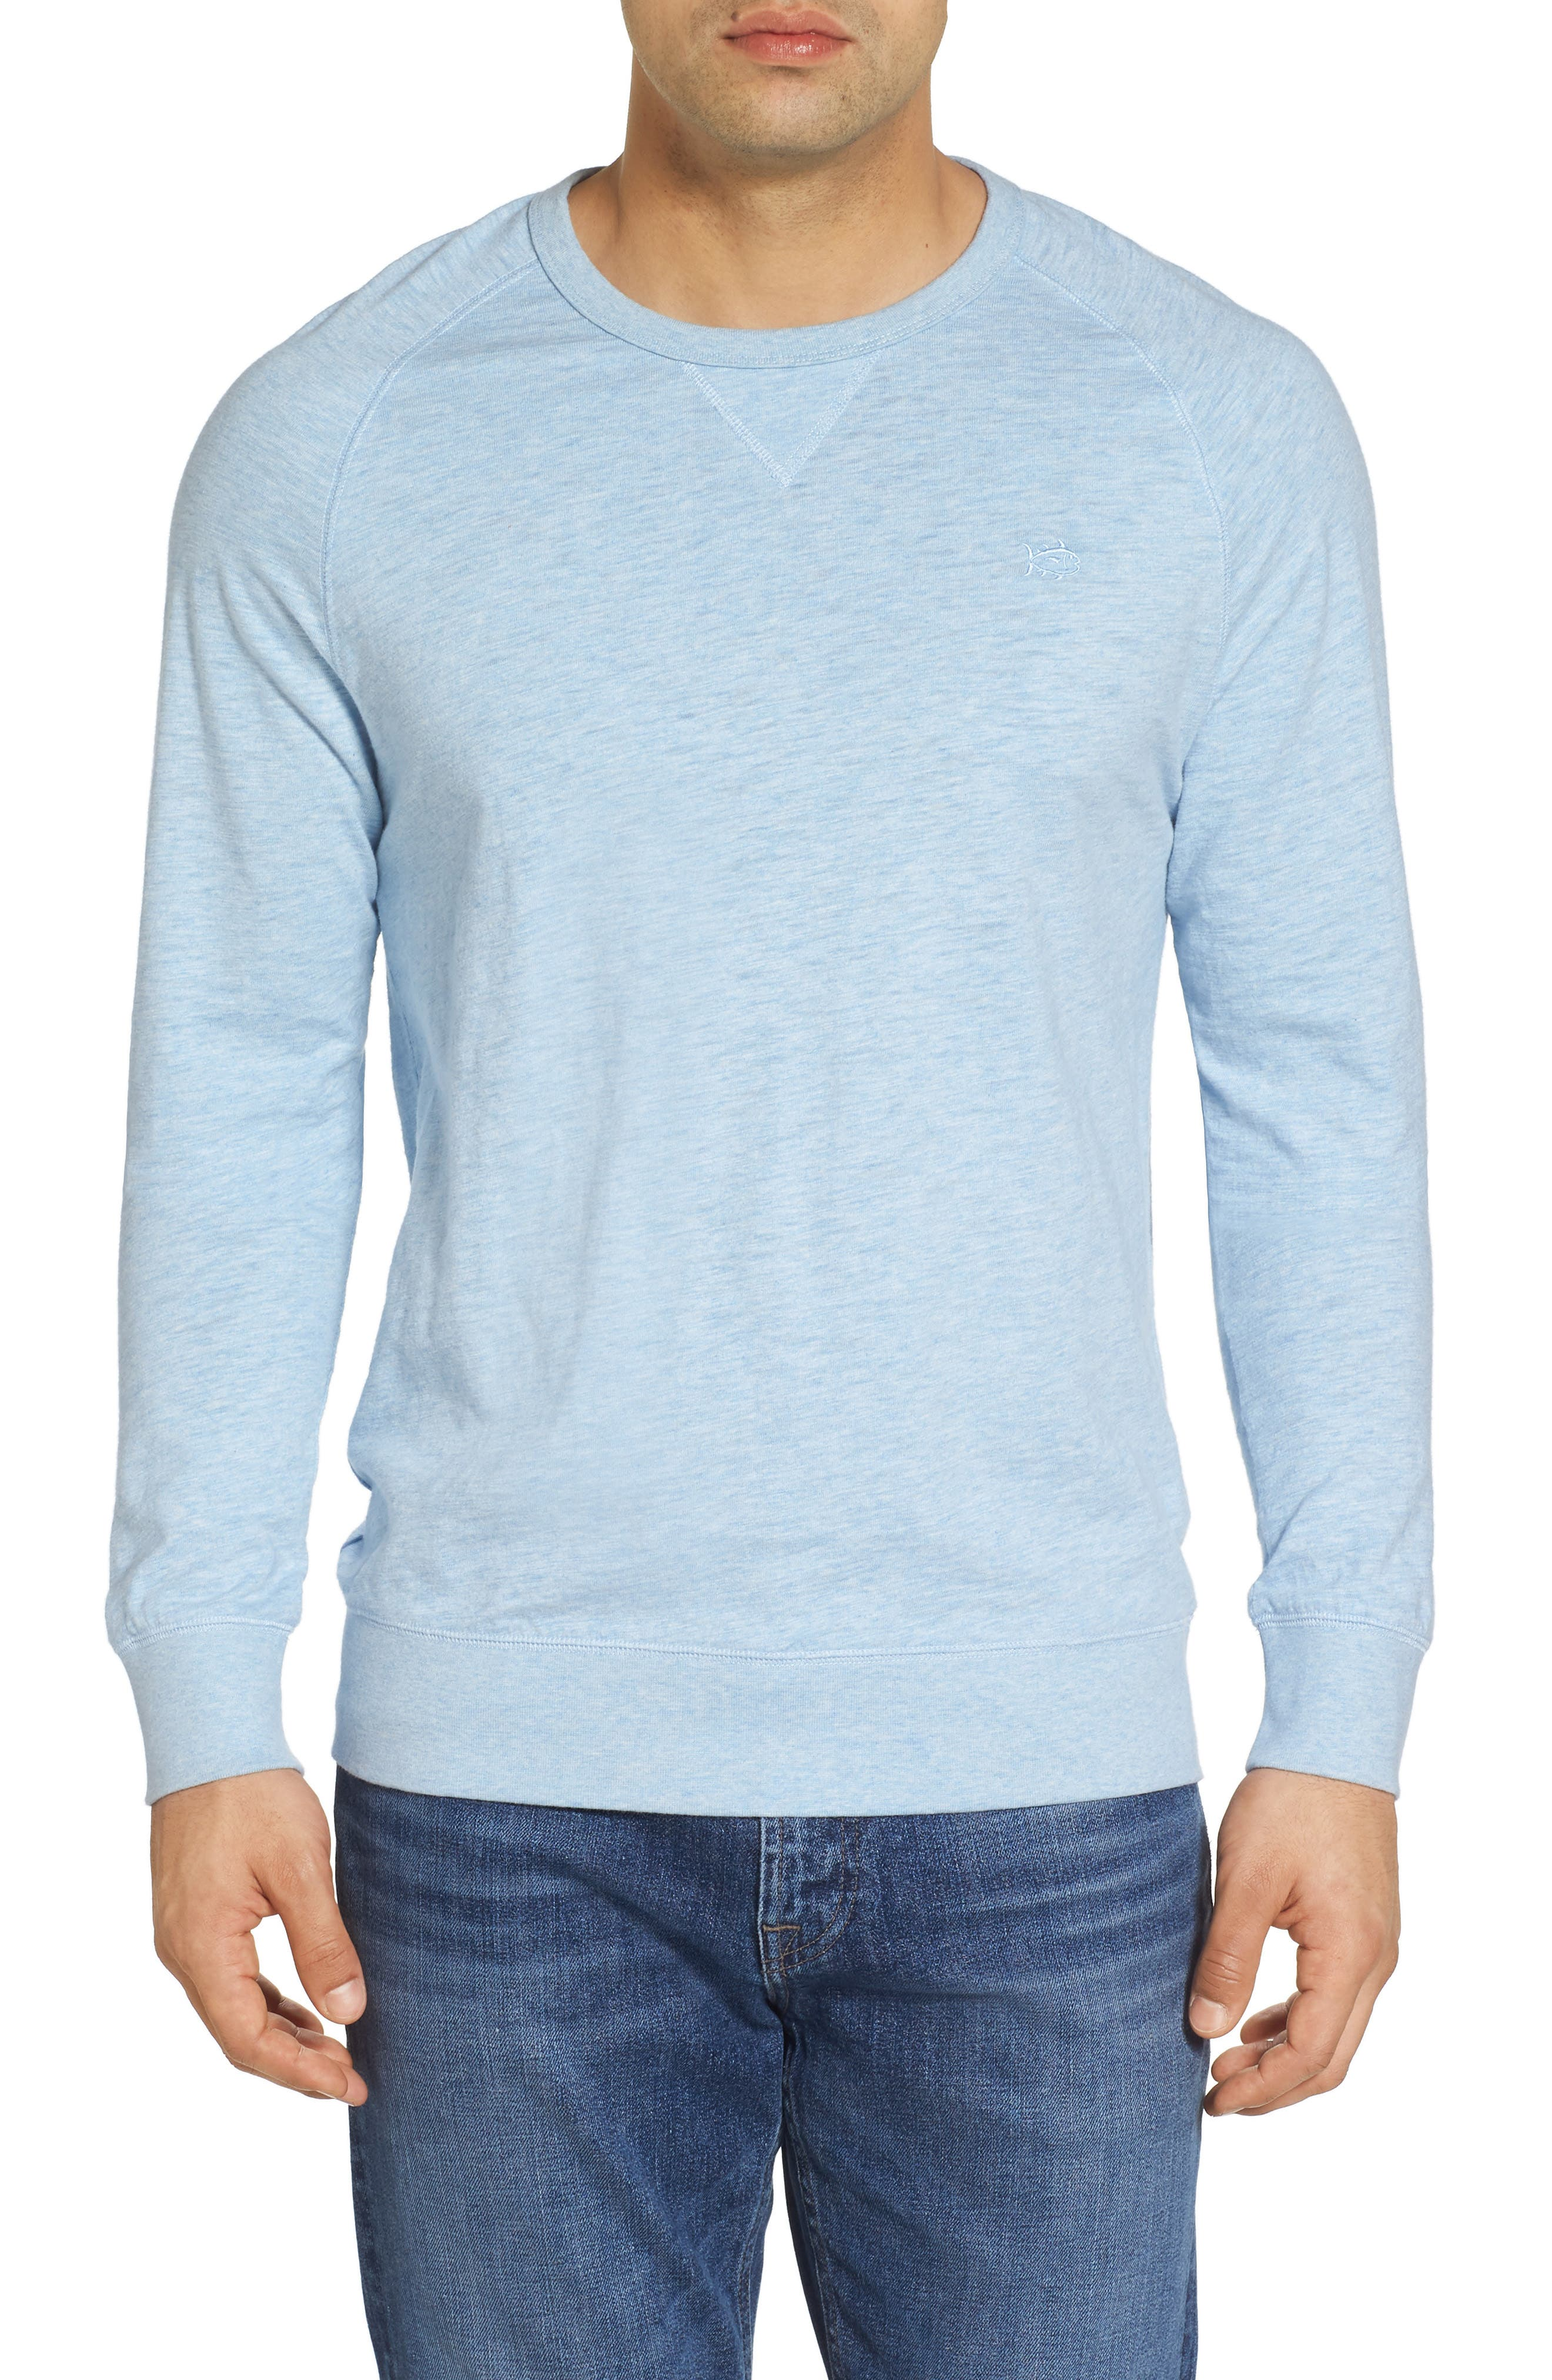 Ocean Course Crewneck Sweatshirt,                         Main,                         color, 450